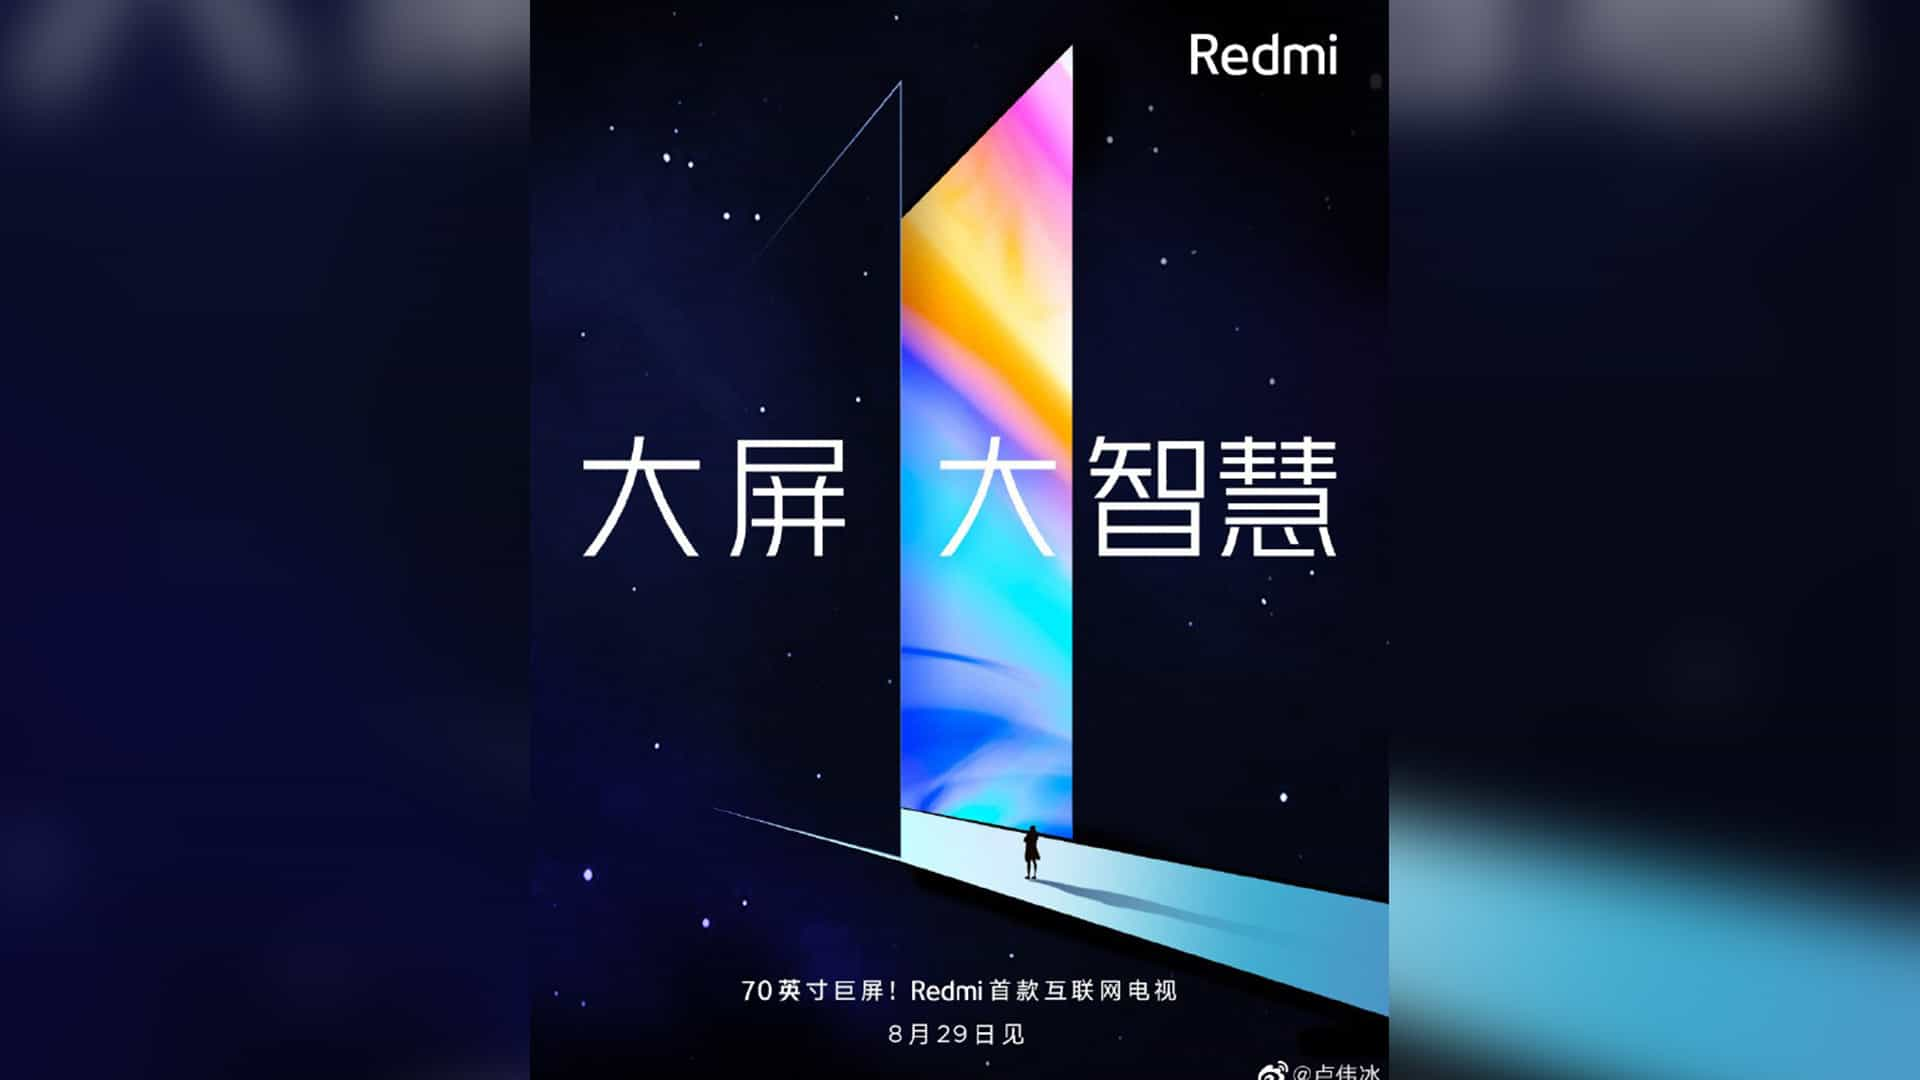 Redmi Internet TV with 70-inch screen to be launched on August 29